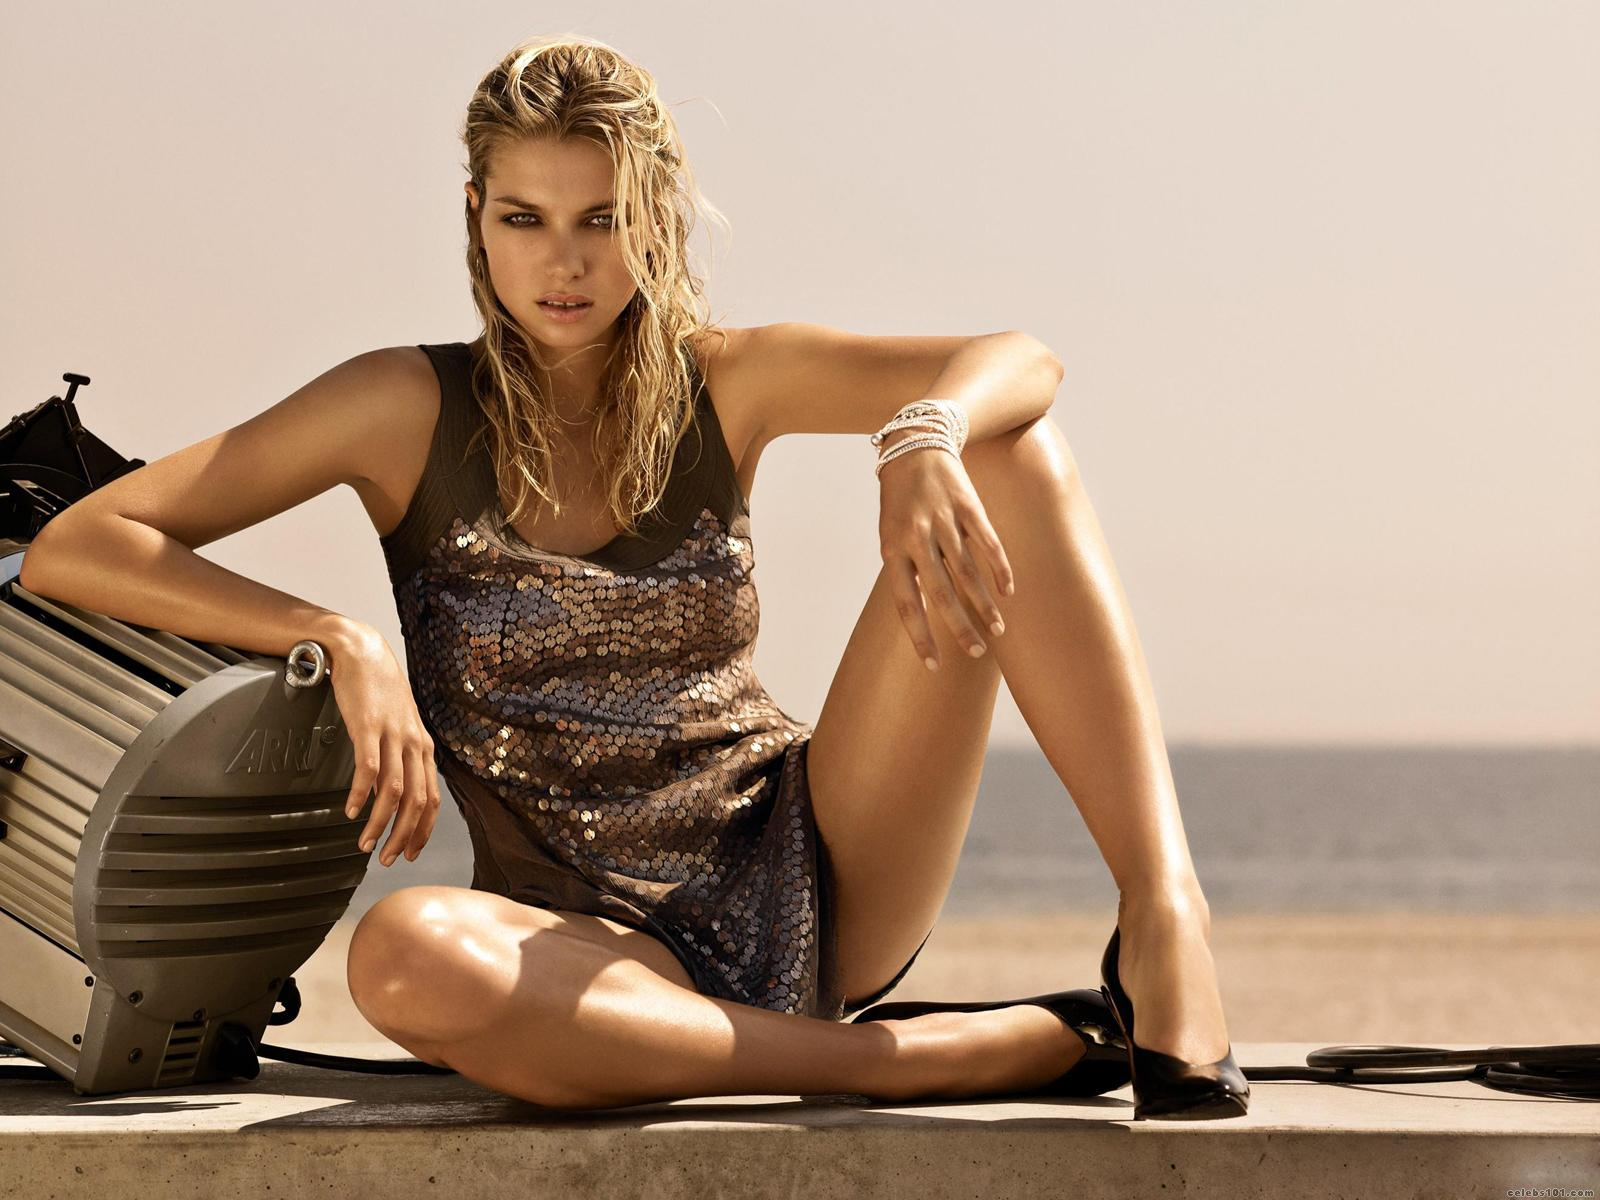 jessica hart high quality wallpaper size 1600x1200 of